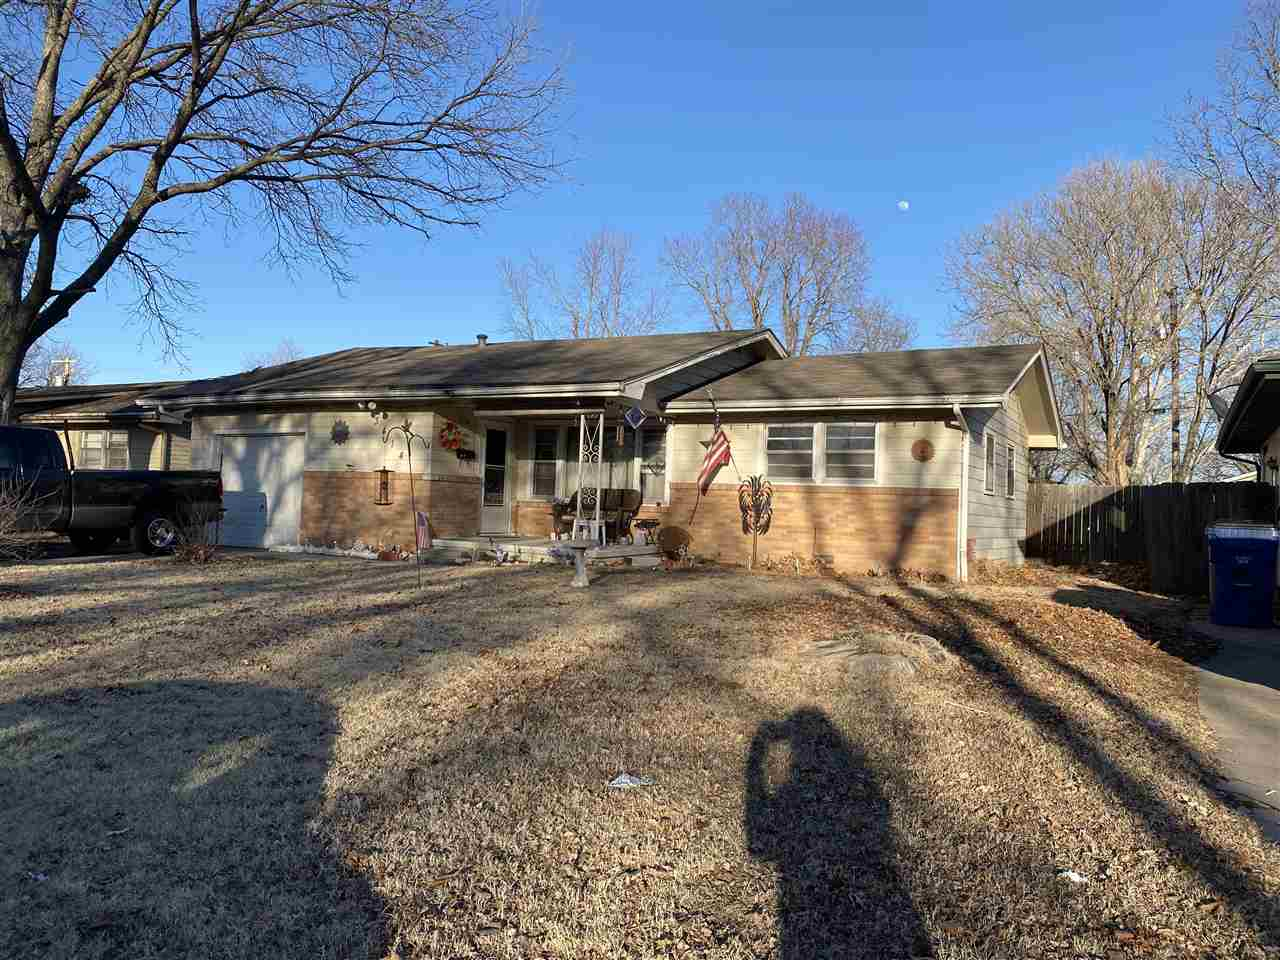 Welcome to this neighborhood located within 1 block of a park, baseball field, splash pad, space to